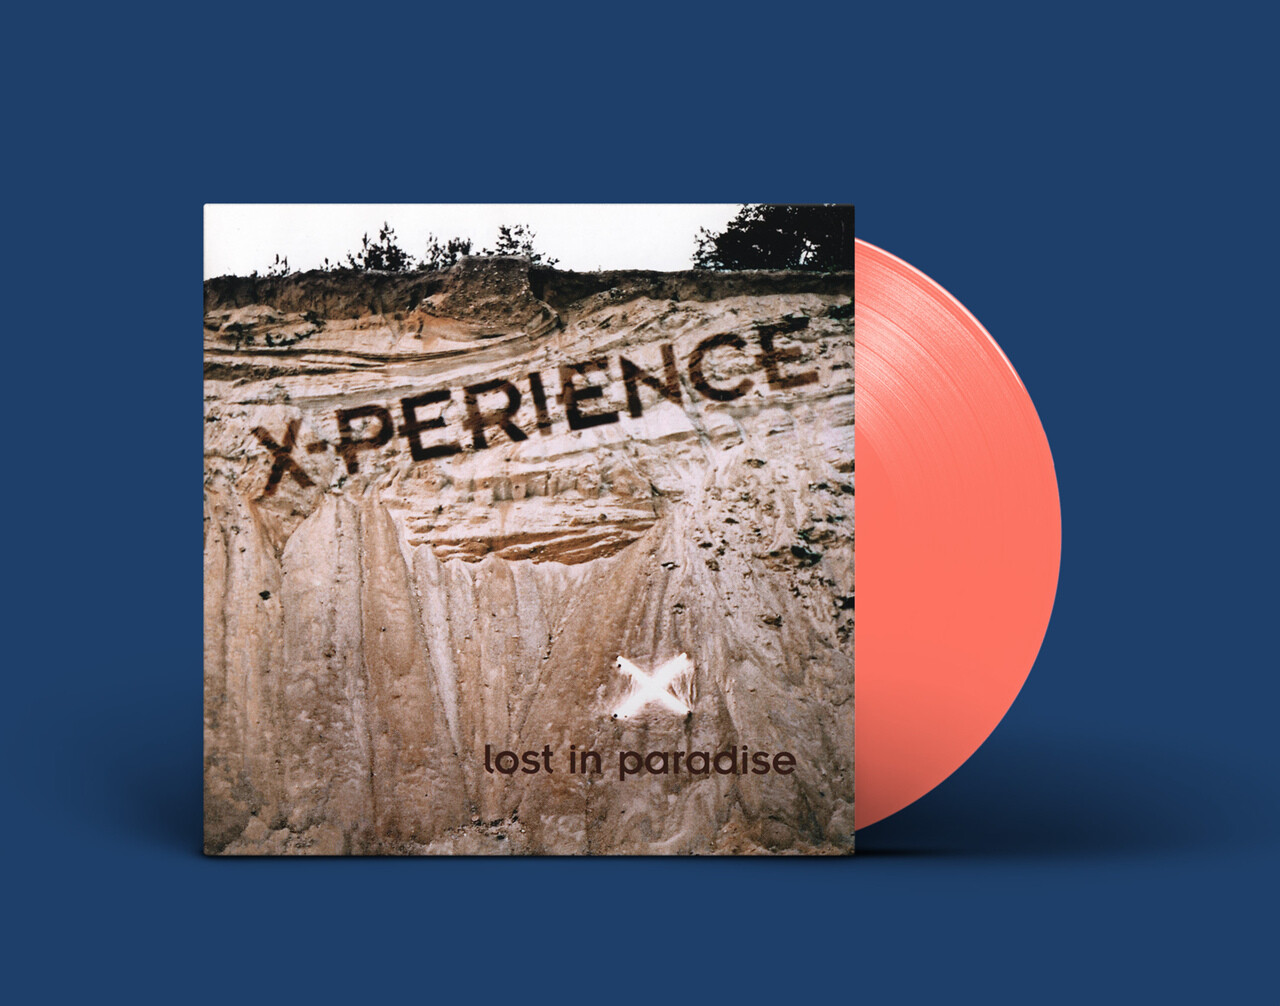 [PREORDER] LP: X-Perience — «Lost In Paradise» (2006/2021) [Limited Pink Vinyl]